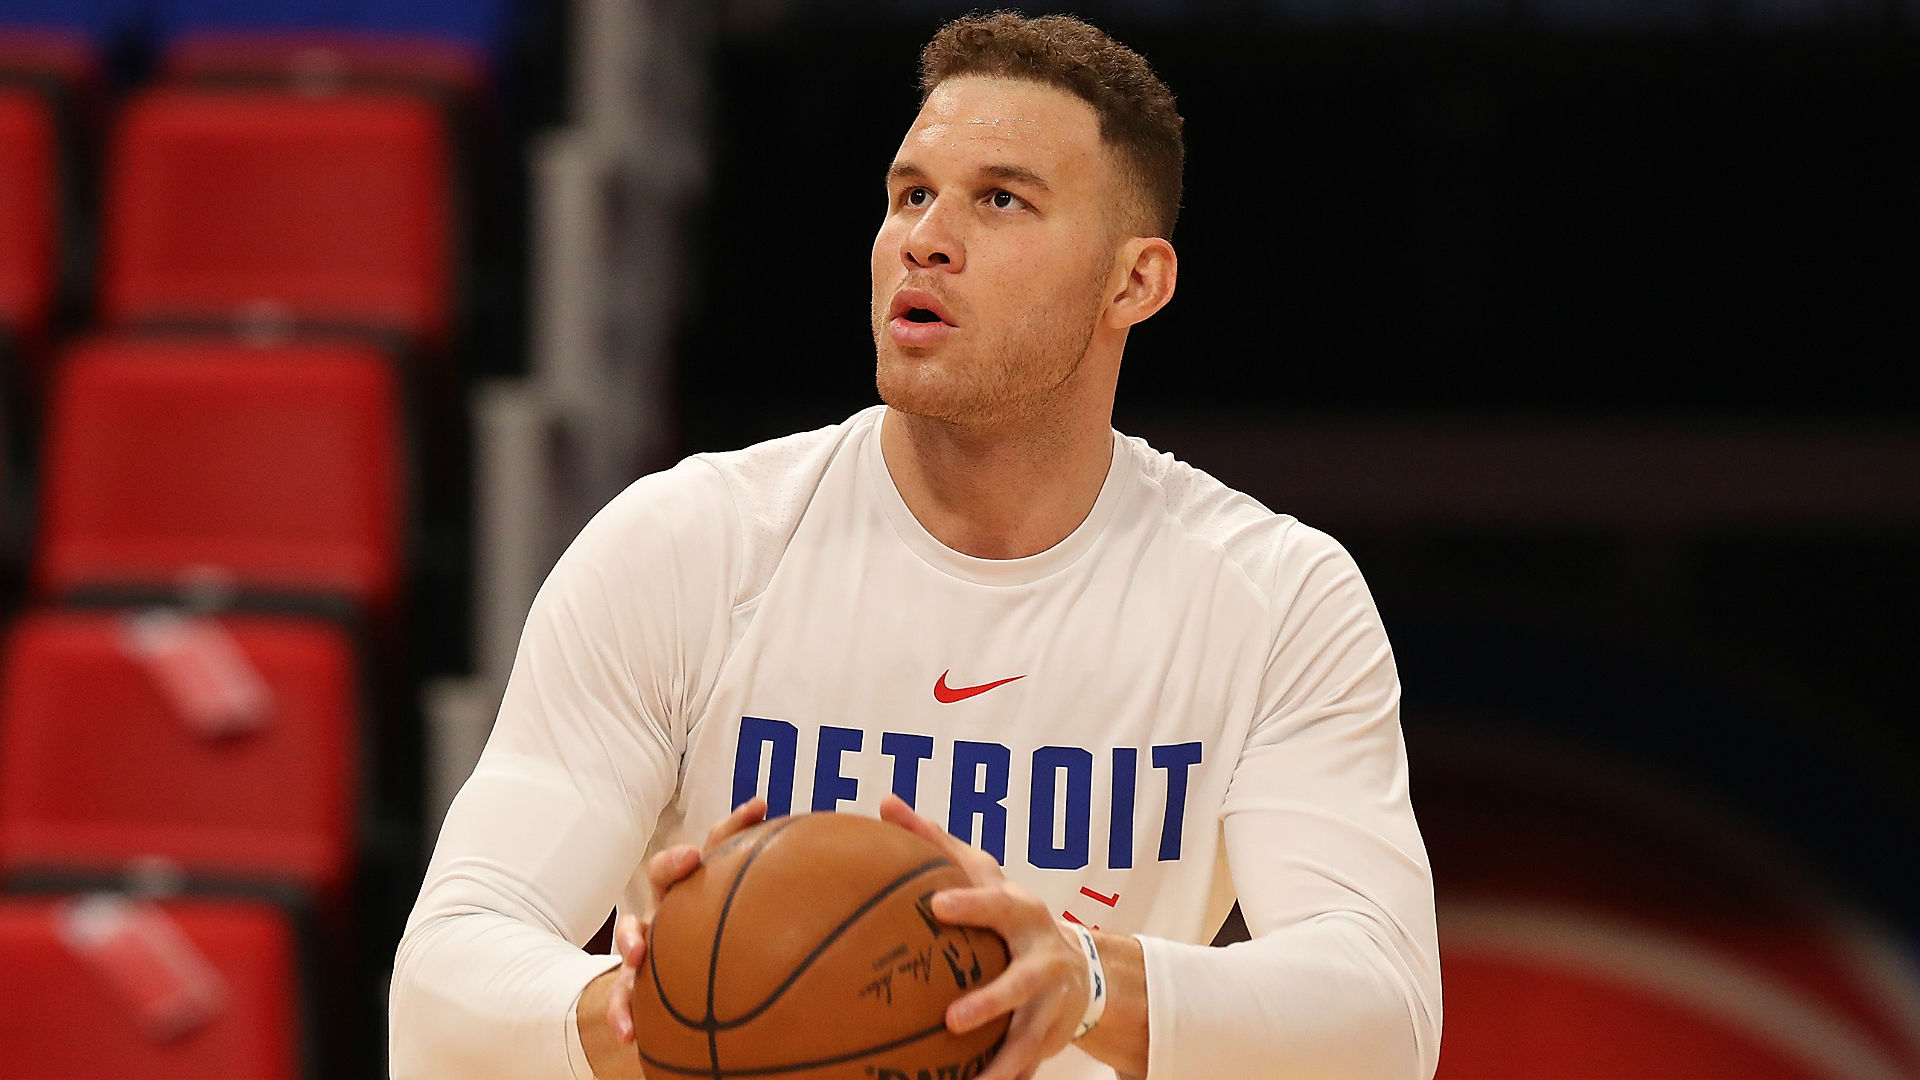 Pistons' Blake Griffin Pays $258000 in Monthly Child Support